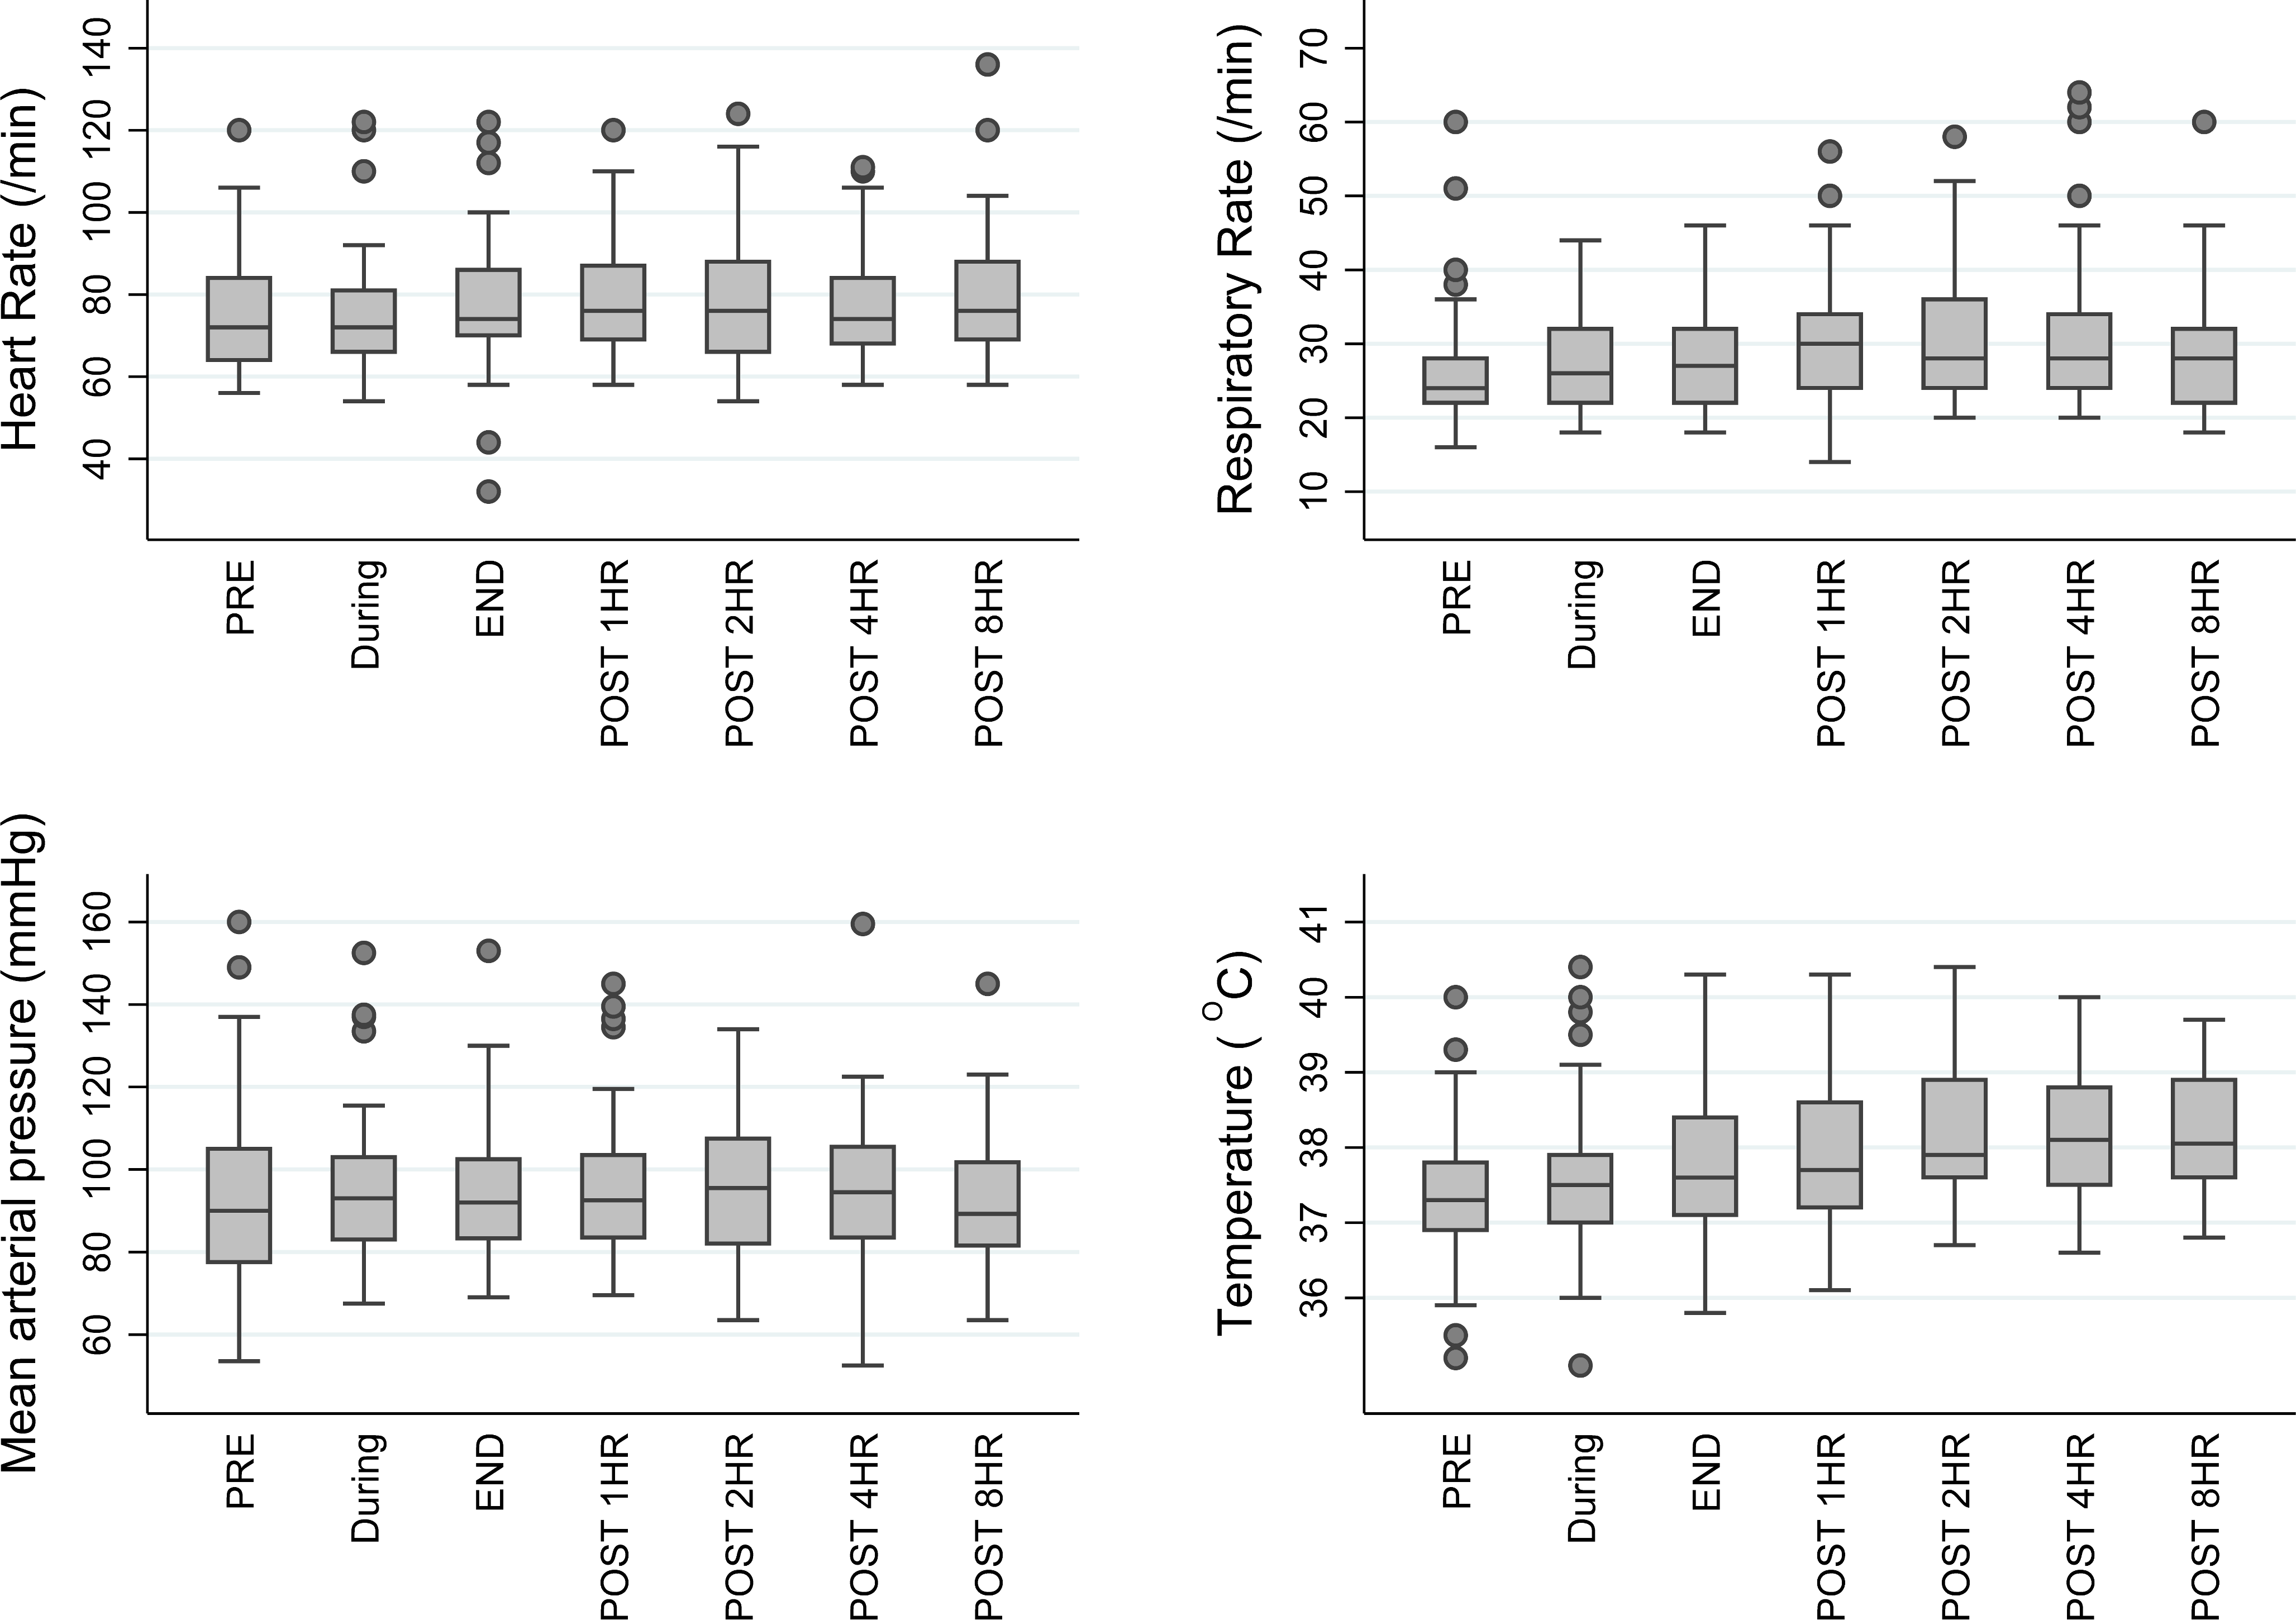 Box and whisker plot of vital signs in TKM-130803 recipients, before, during, and after TKM-130803 infusions.